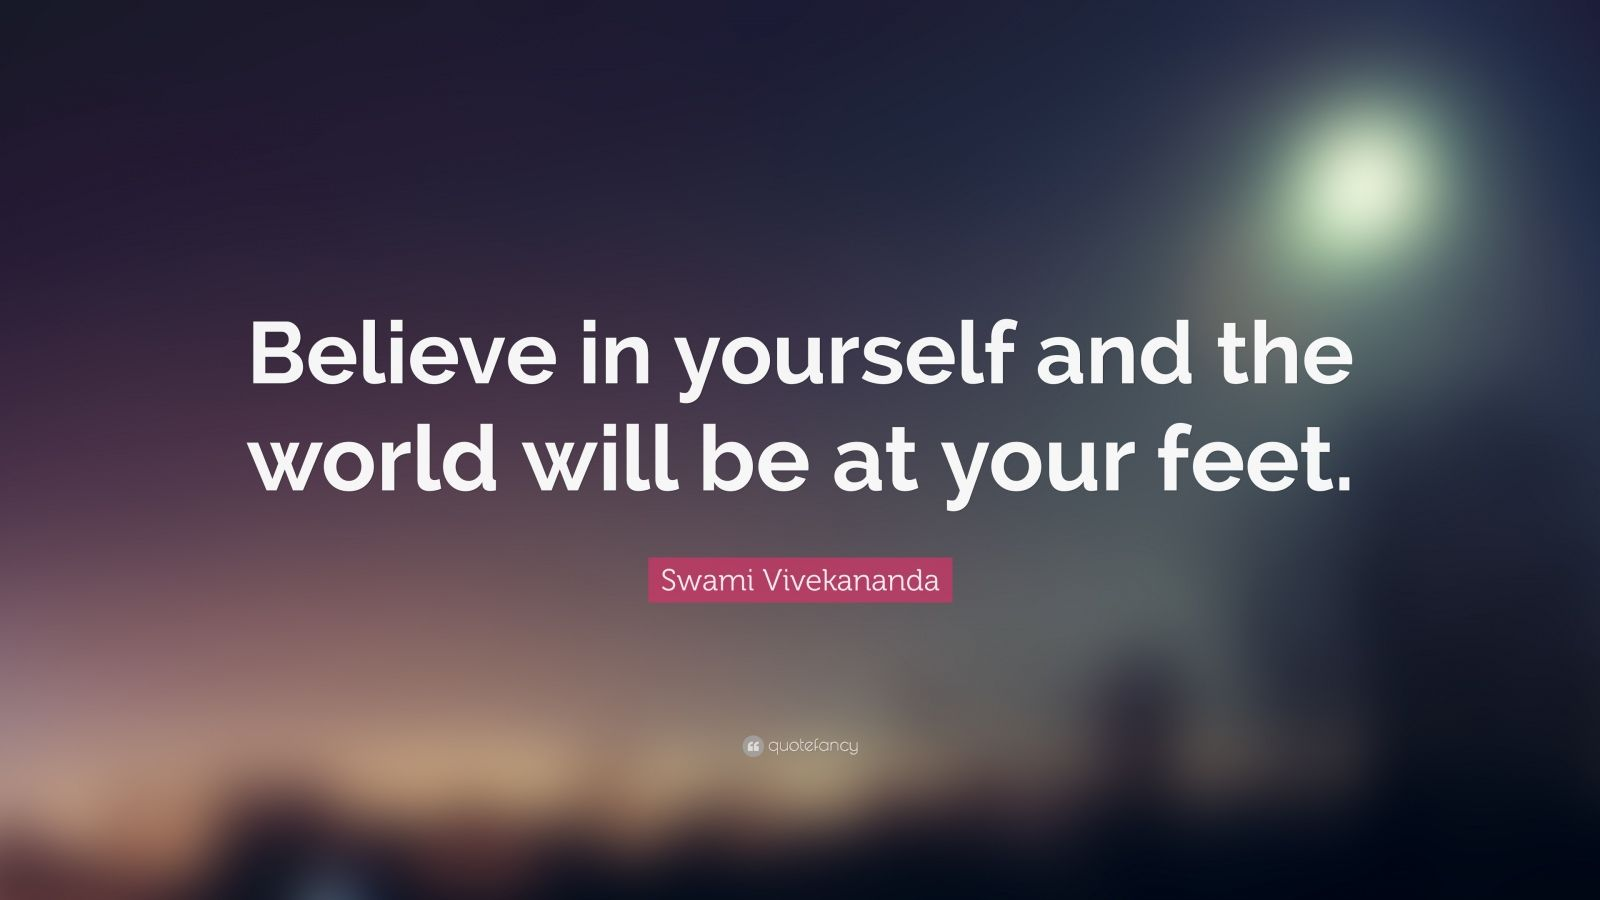 Dalai Lama Quotes Wallpapers Swami Vivekananda Quote Believe In Yourself And The